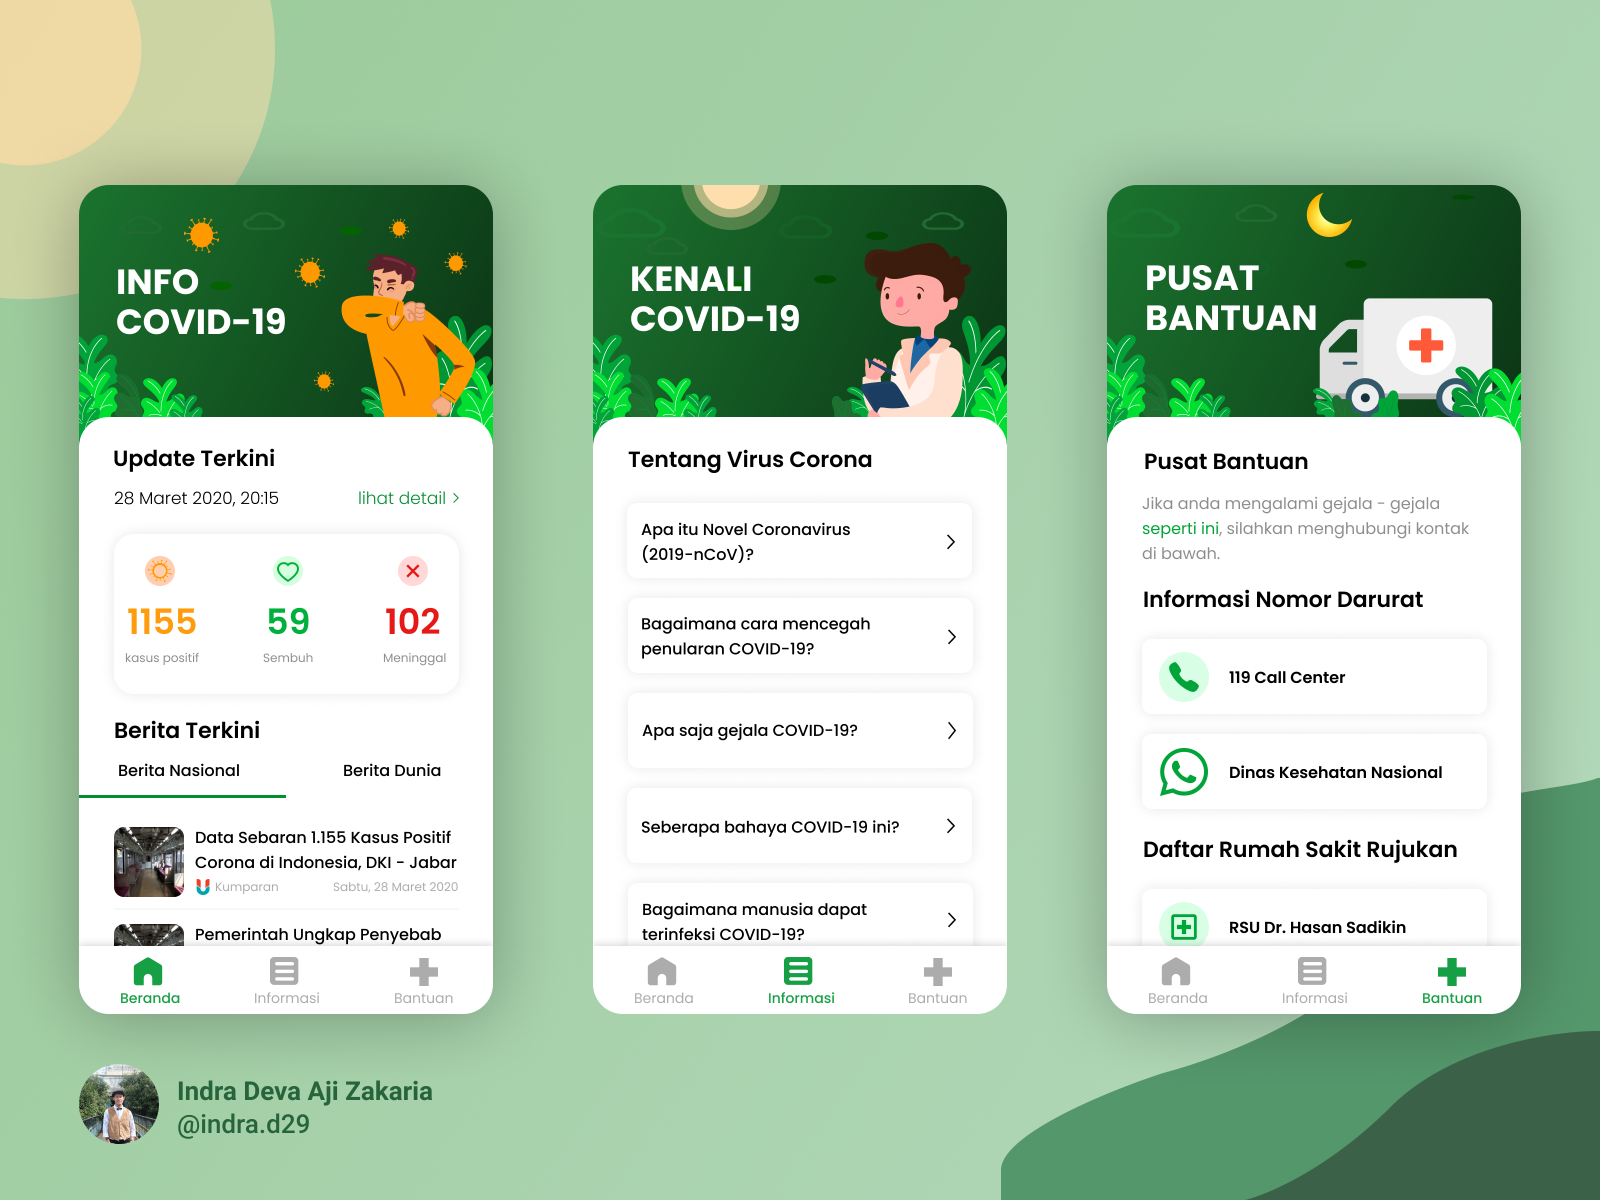 Covid 19 Tracker Apps Design By Indra Deva Aji Zakaria On Dribbble